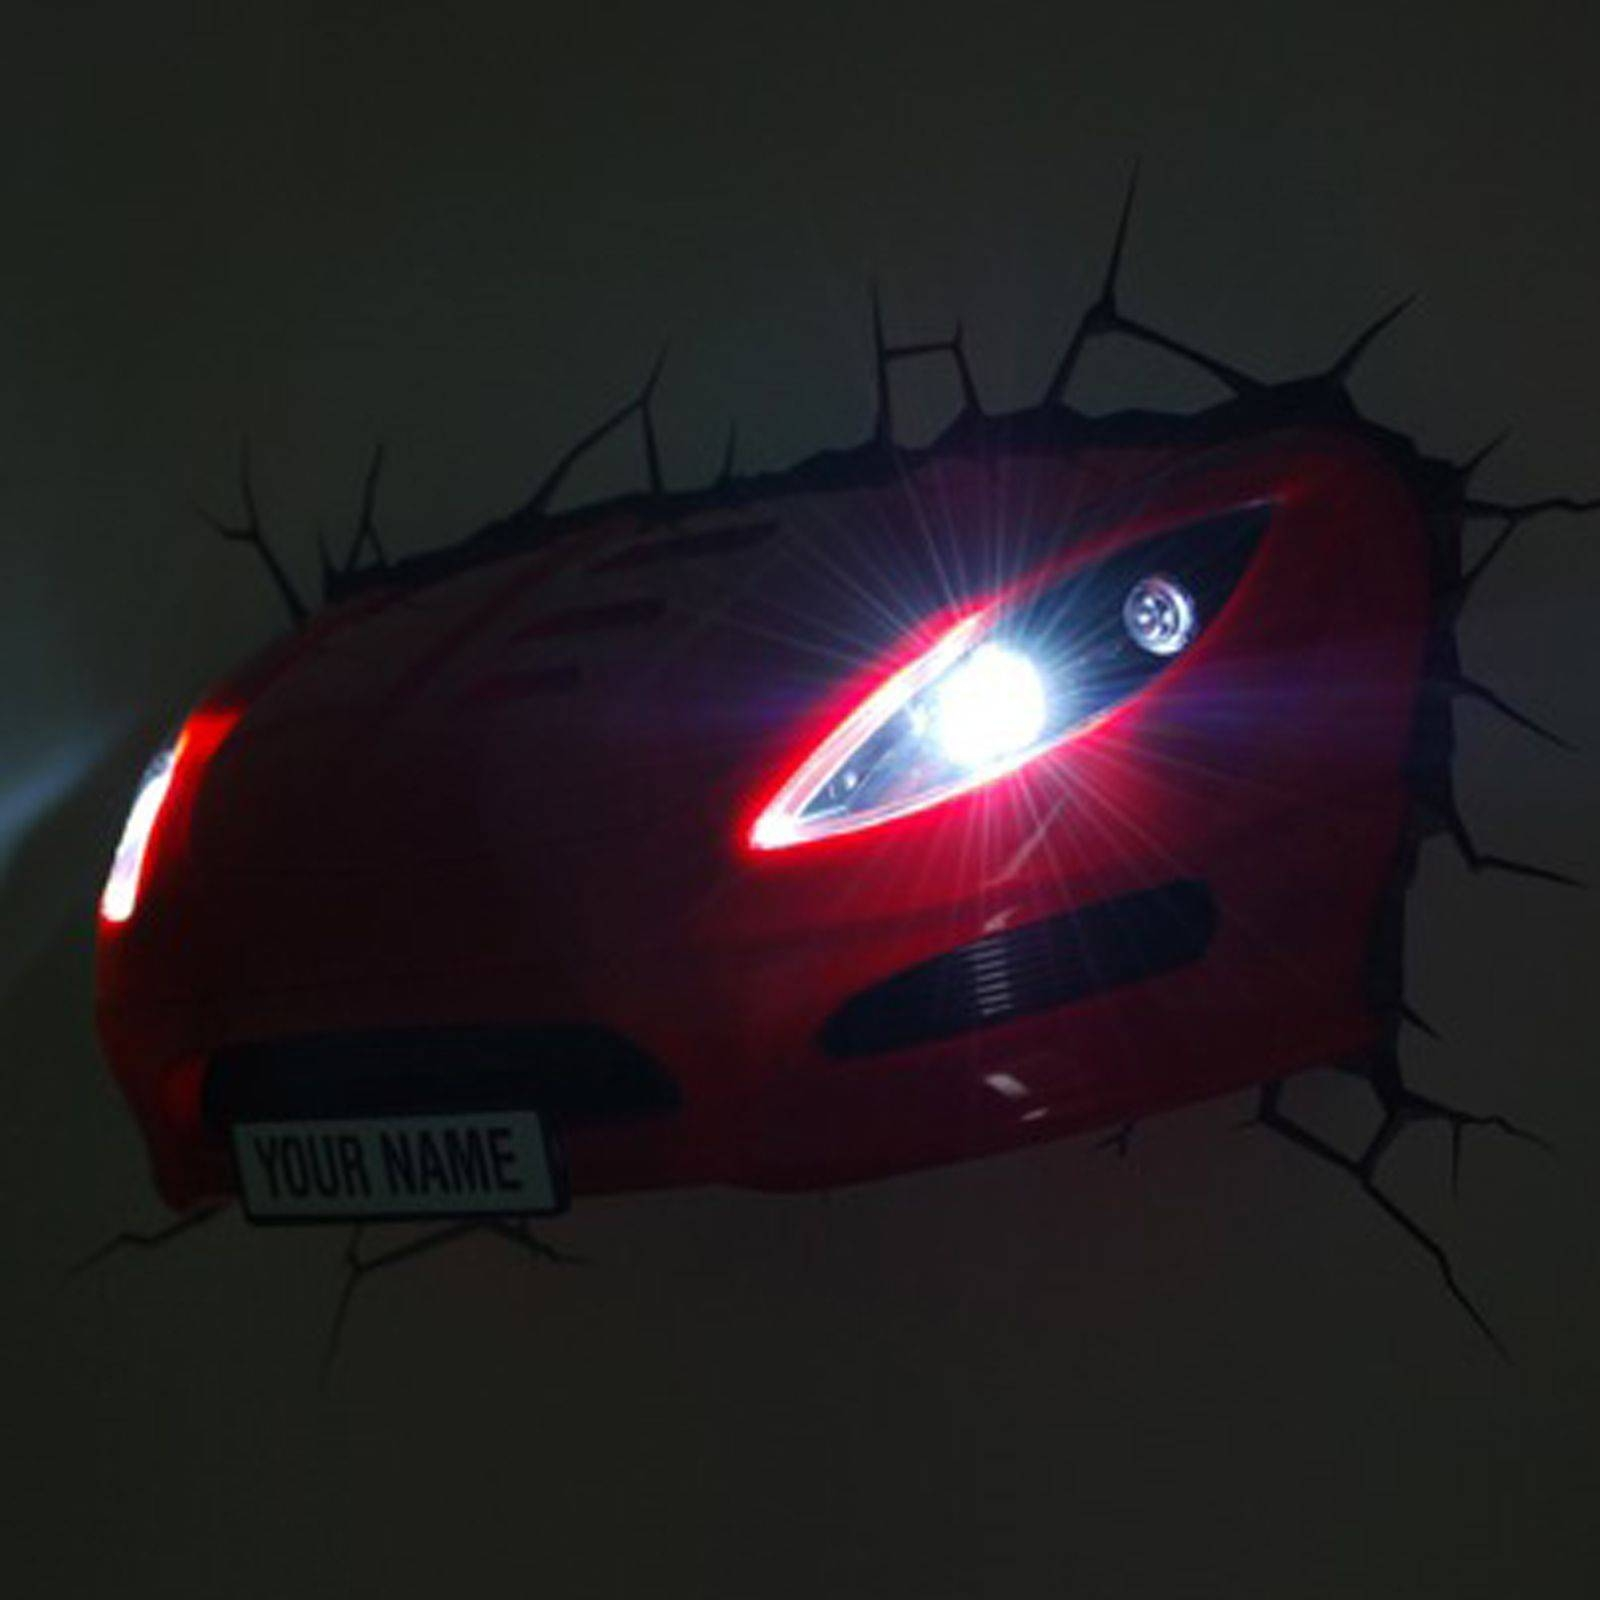 Red Sports Car 3D Effect Wall Light Lamp New Led Bedroom Decor | Ebay Inside 2018 Cars 3D Wall Art (View 7 of 20)